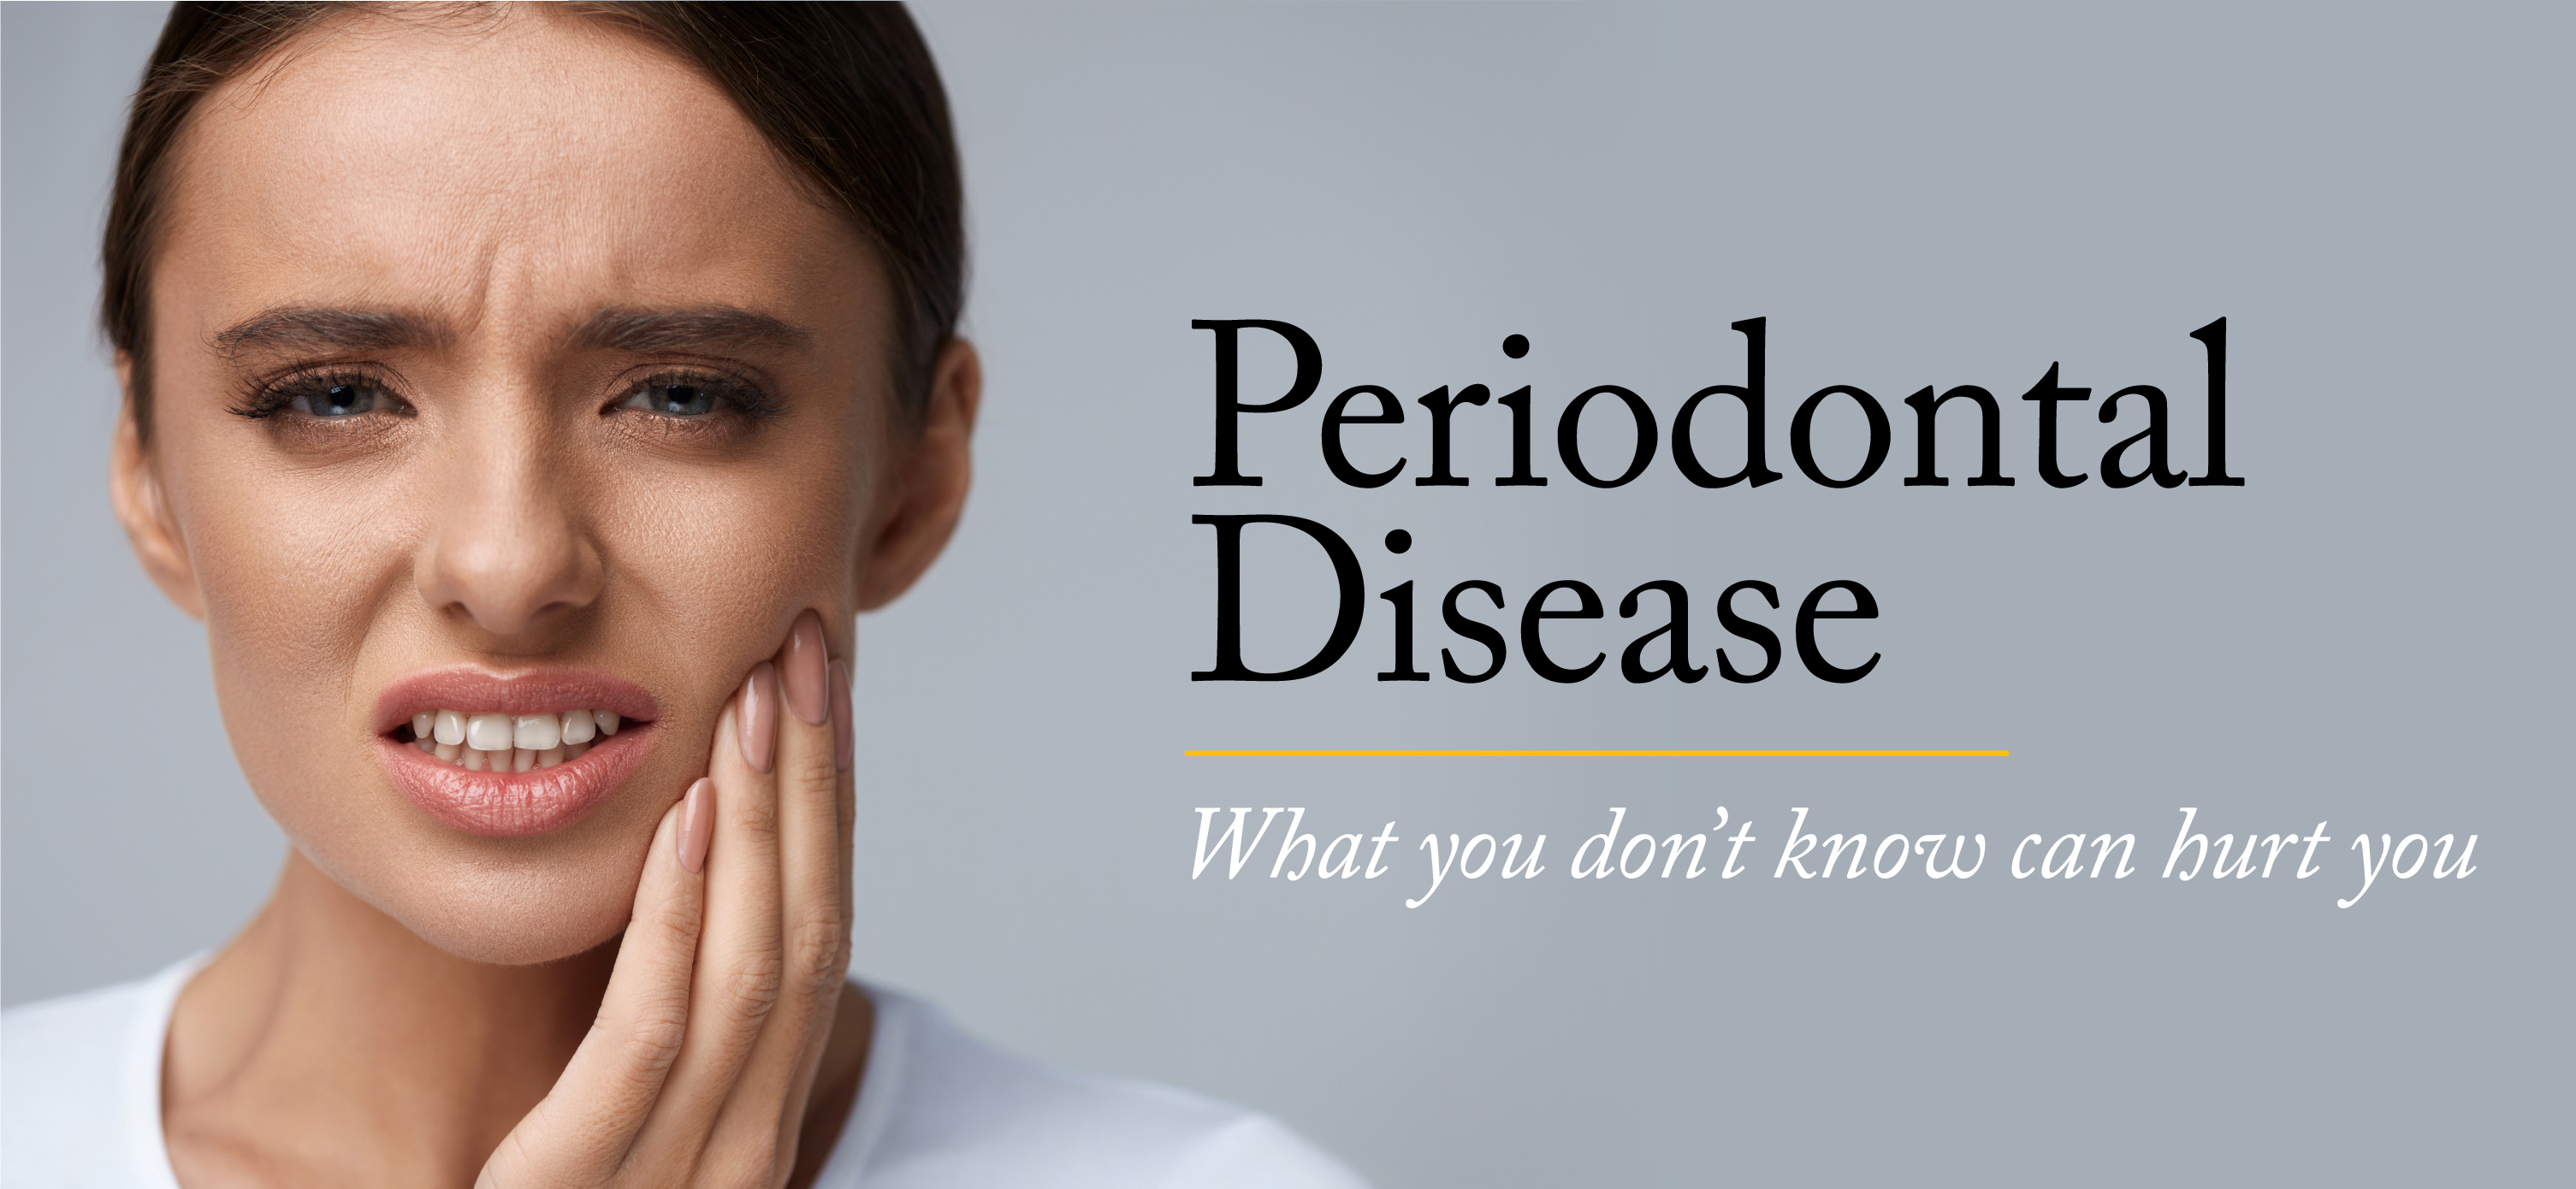 University Place Periodontal Disease